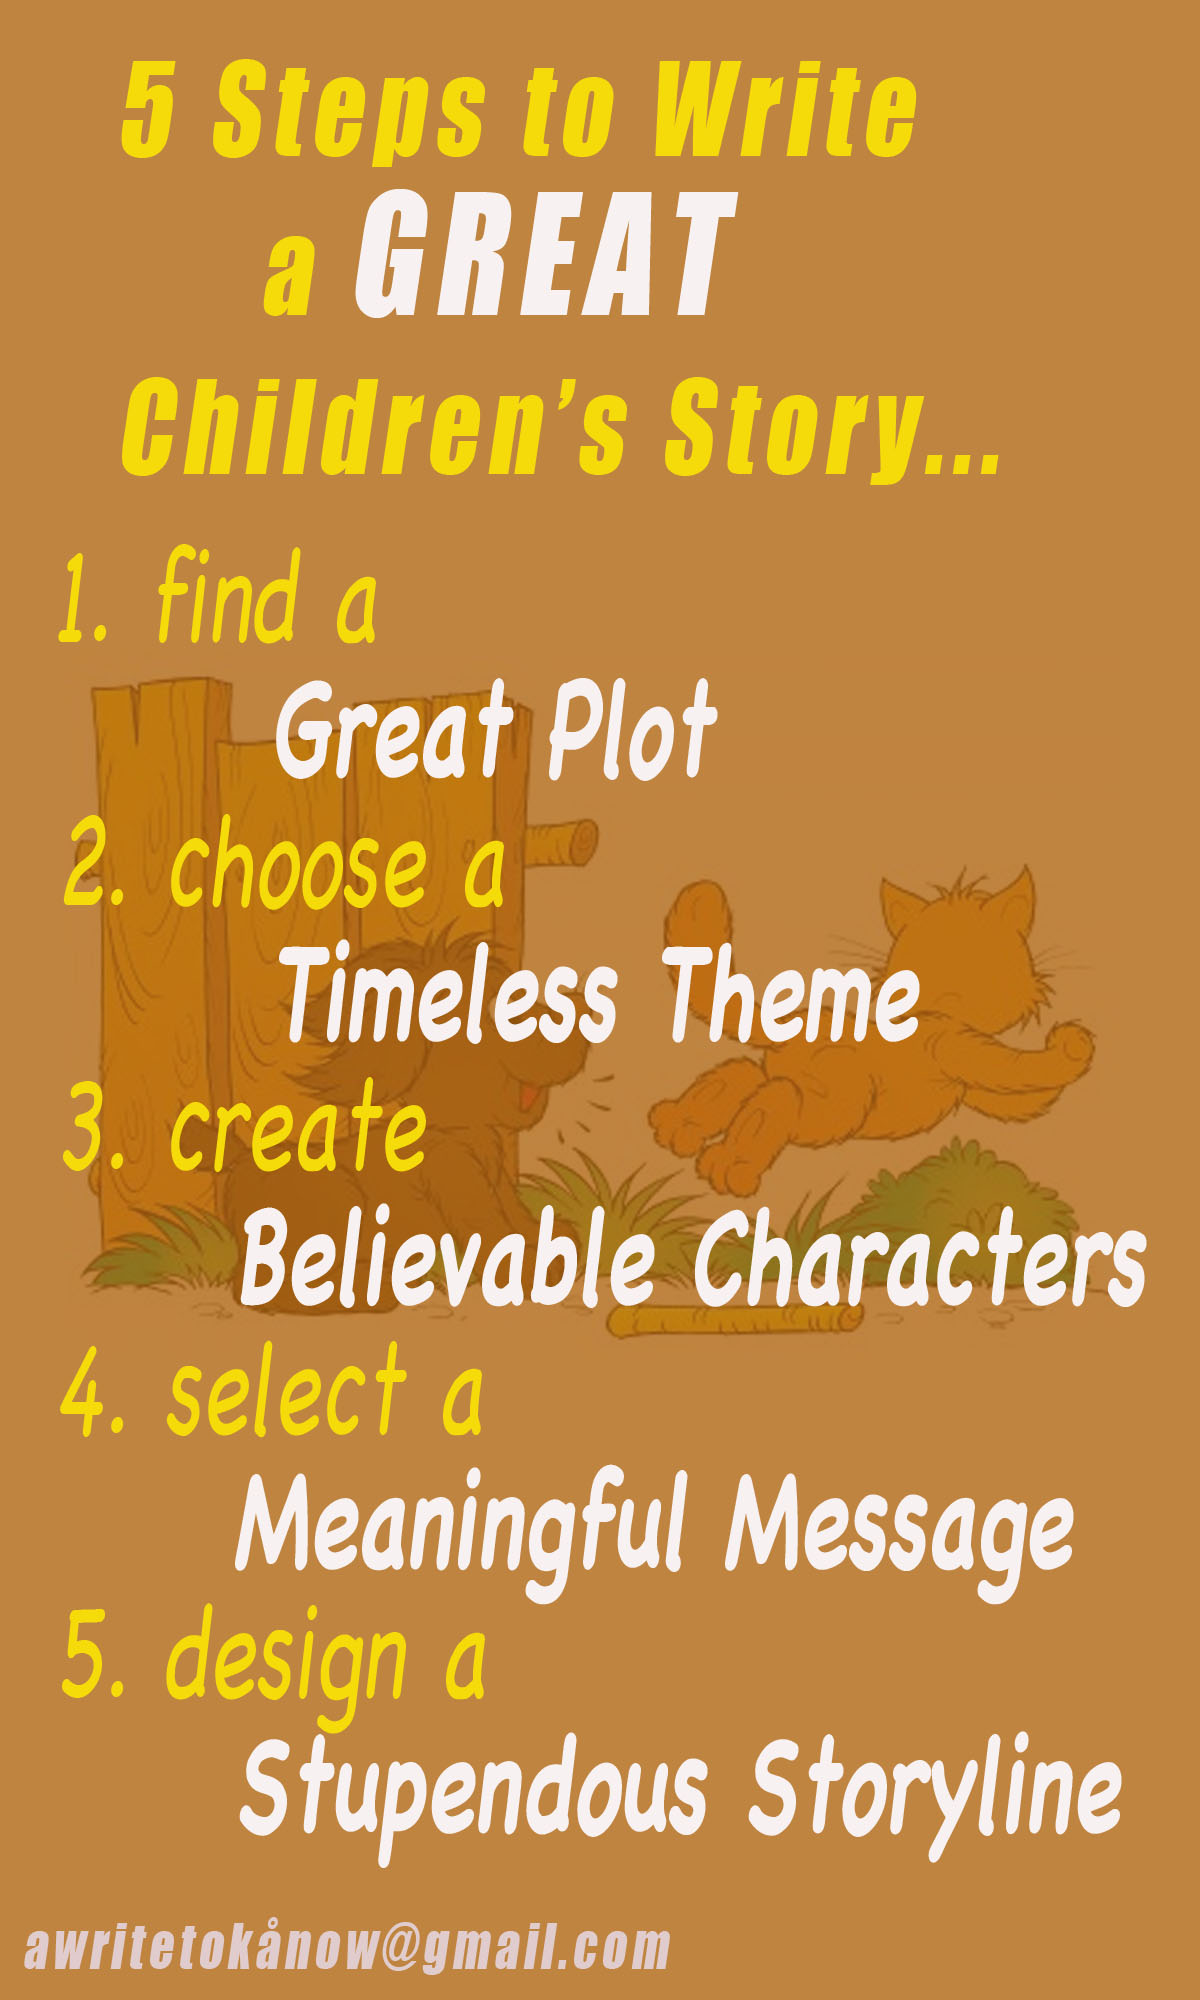 """Vague image of cat and dog playing behind words that say, """"5 Steps to Write a Great Children's Story. One, Find a great plot. Two, Choose a timeless theme. 3, Create meaningful characters. Four, Select a meaningful message. Five, """"Design a stupendous storyline."""""""